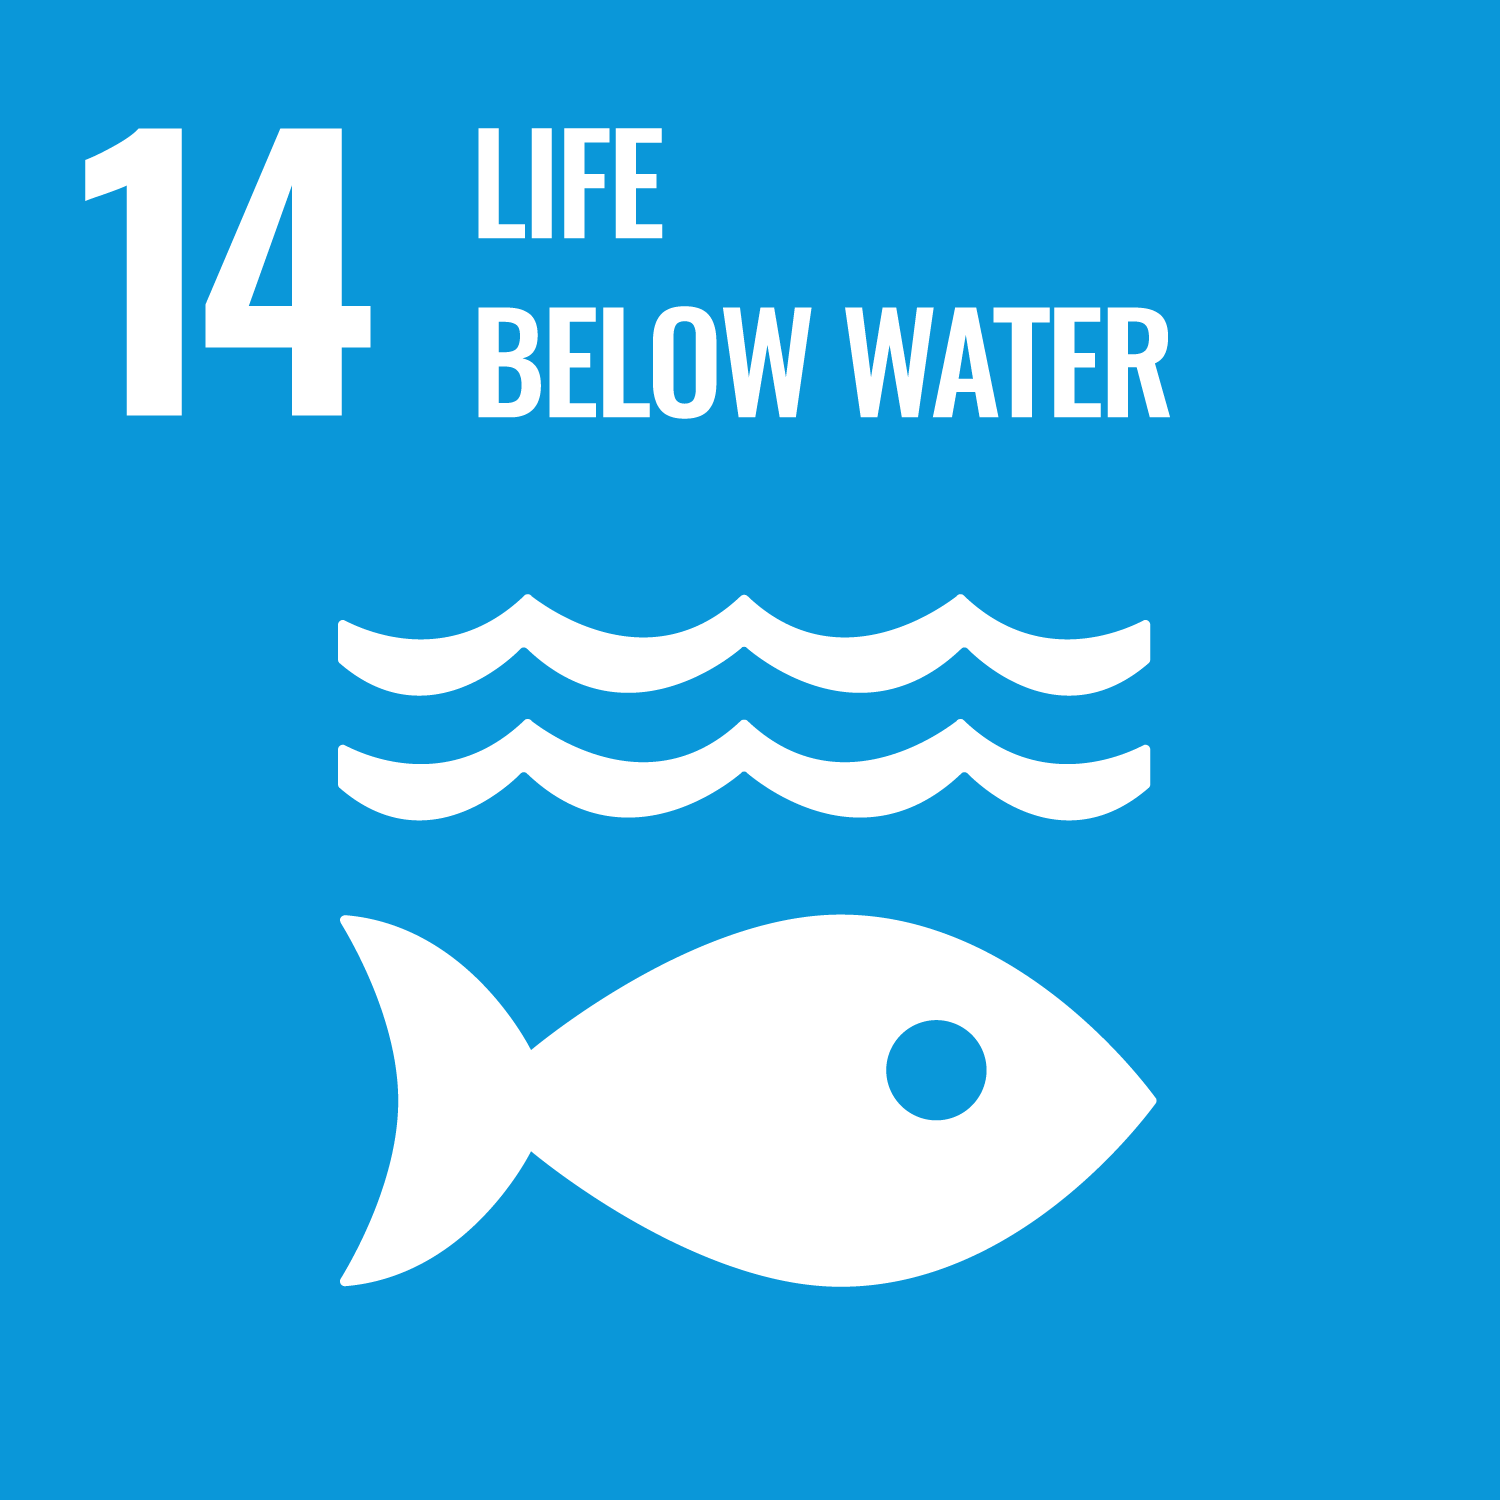 SDG 14: Life Below Water